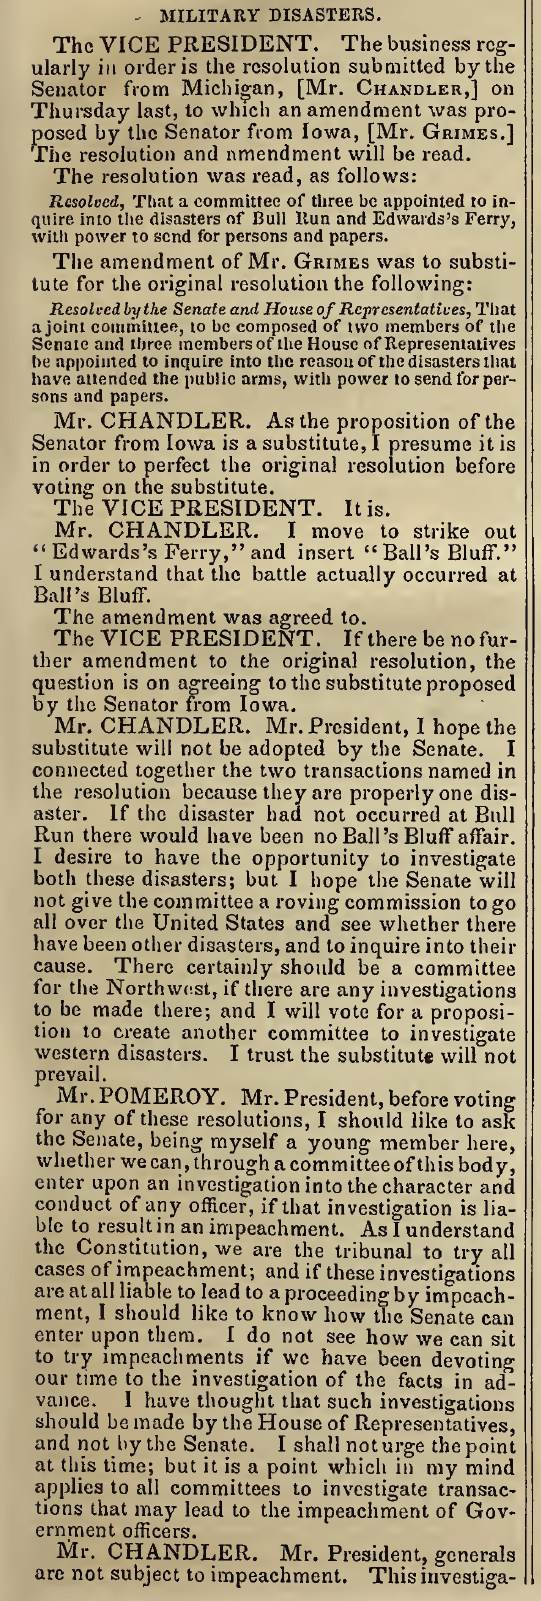 Congressmen move to establish an oversight committee after the disasters at Bull Run and Ball's Bluff - Congressional Globe December 9, 1861